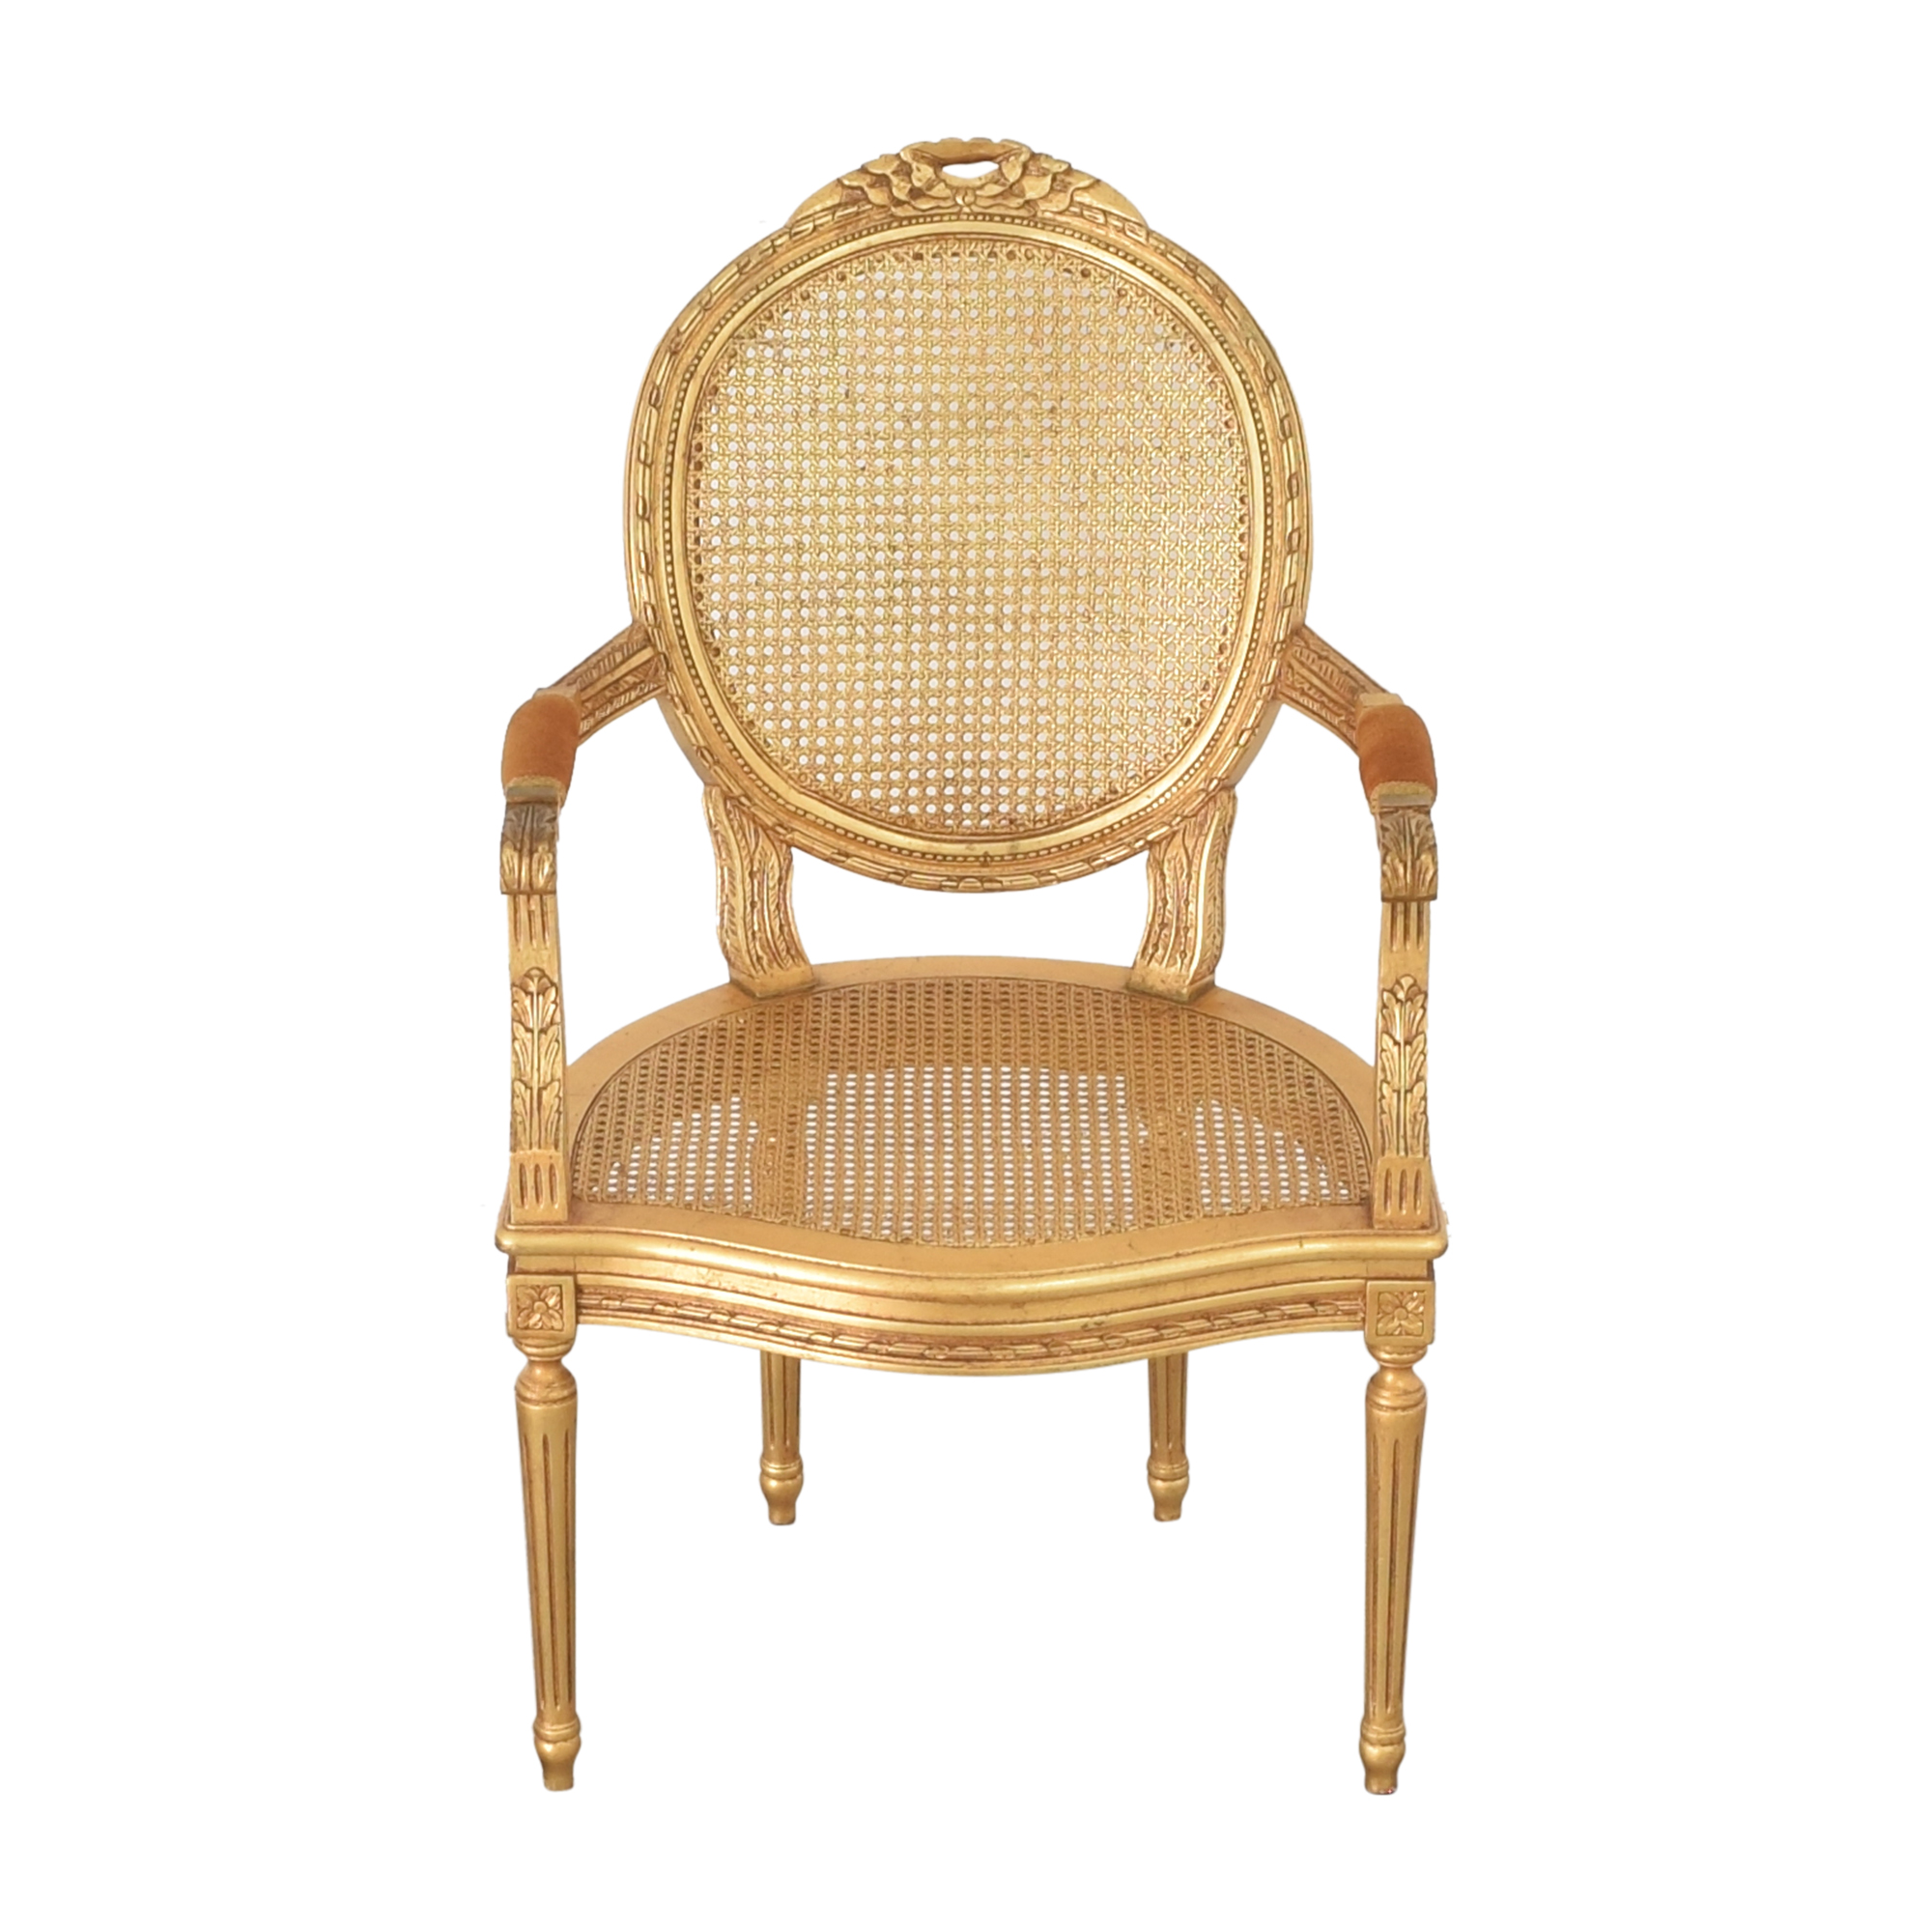 Decorative Crafts Decorative Crafts Louis XVI Fauteuil Armchair nyc